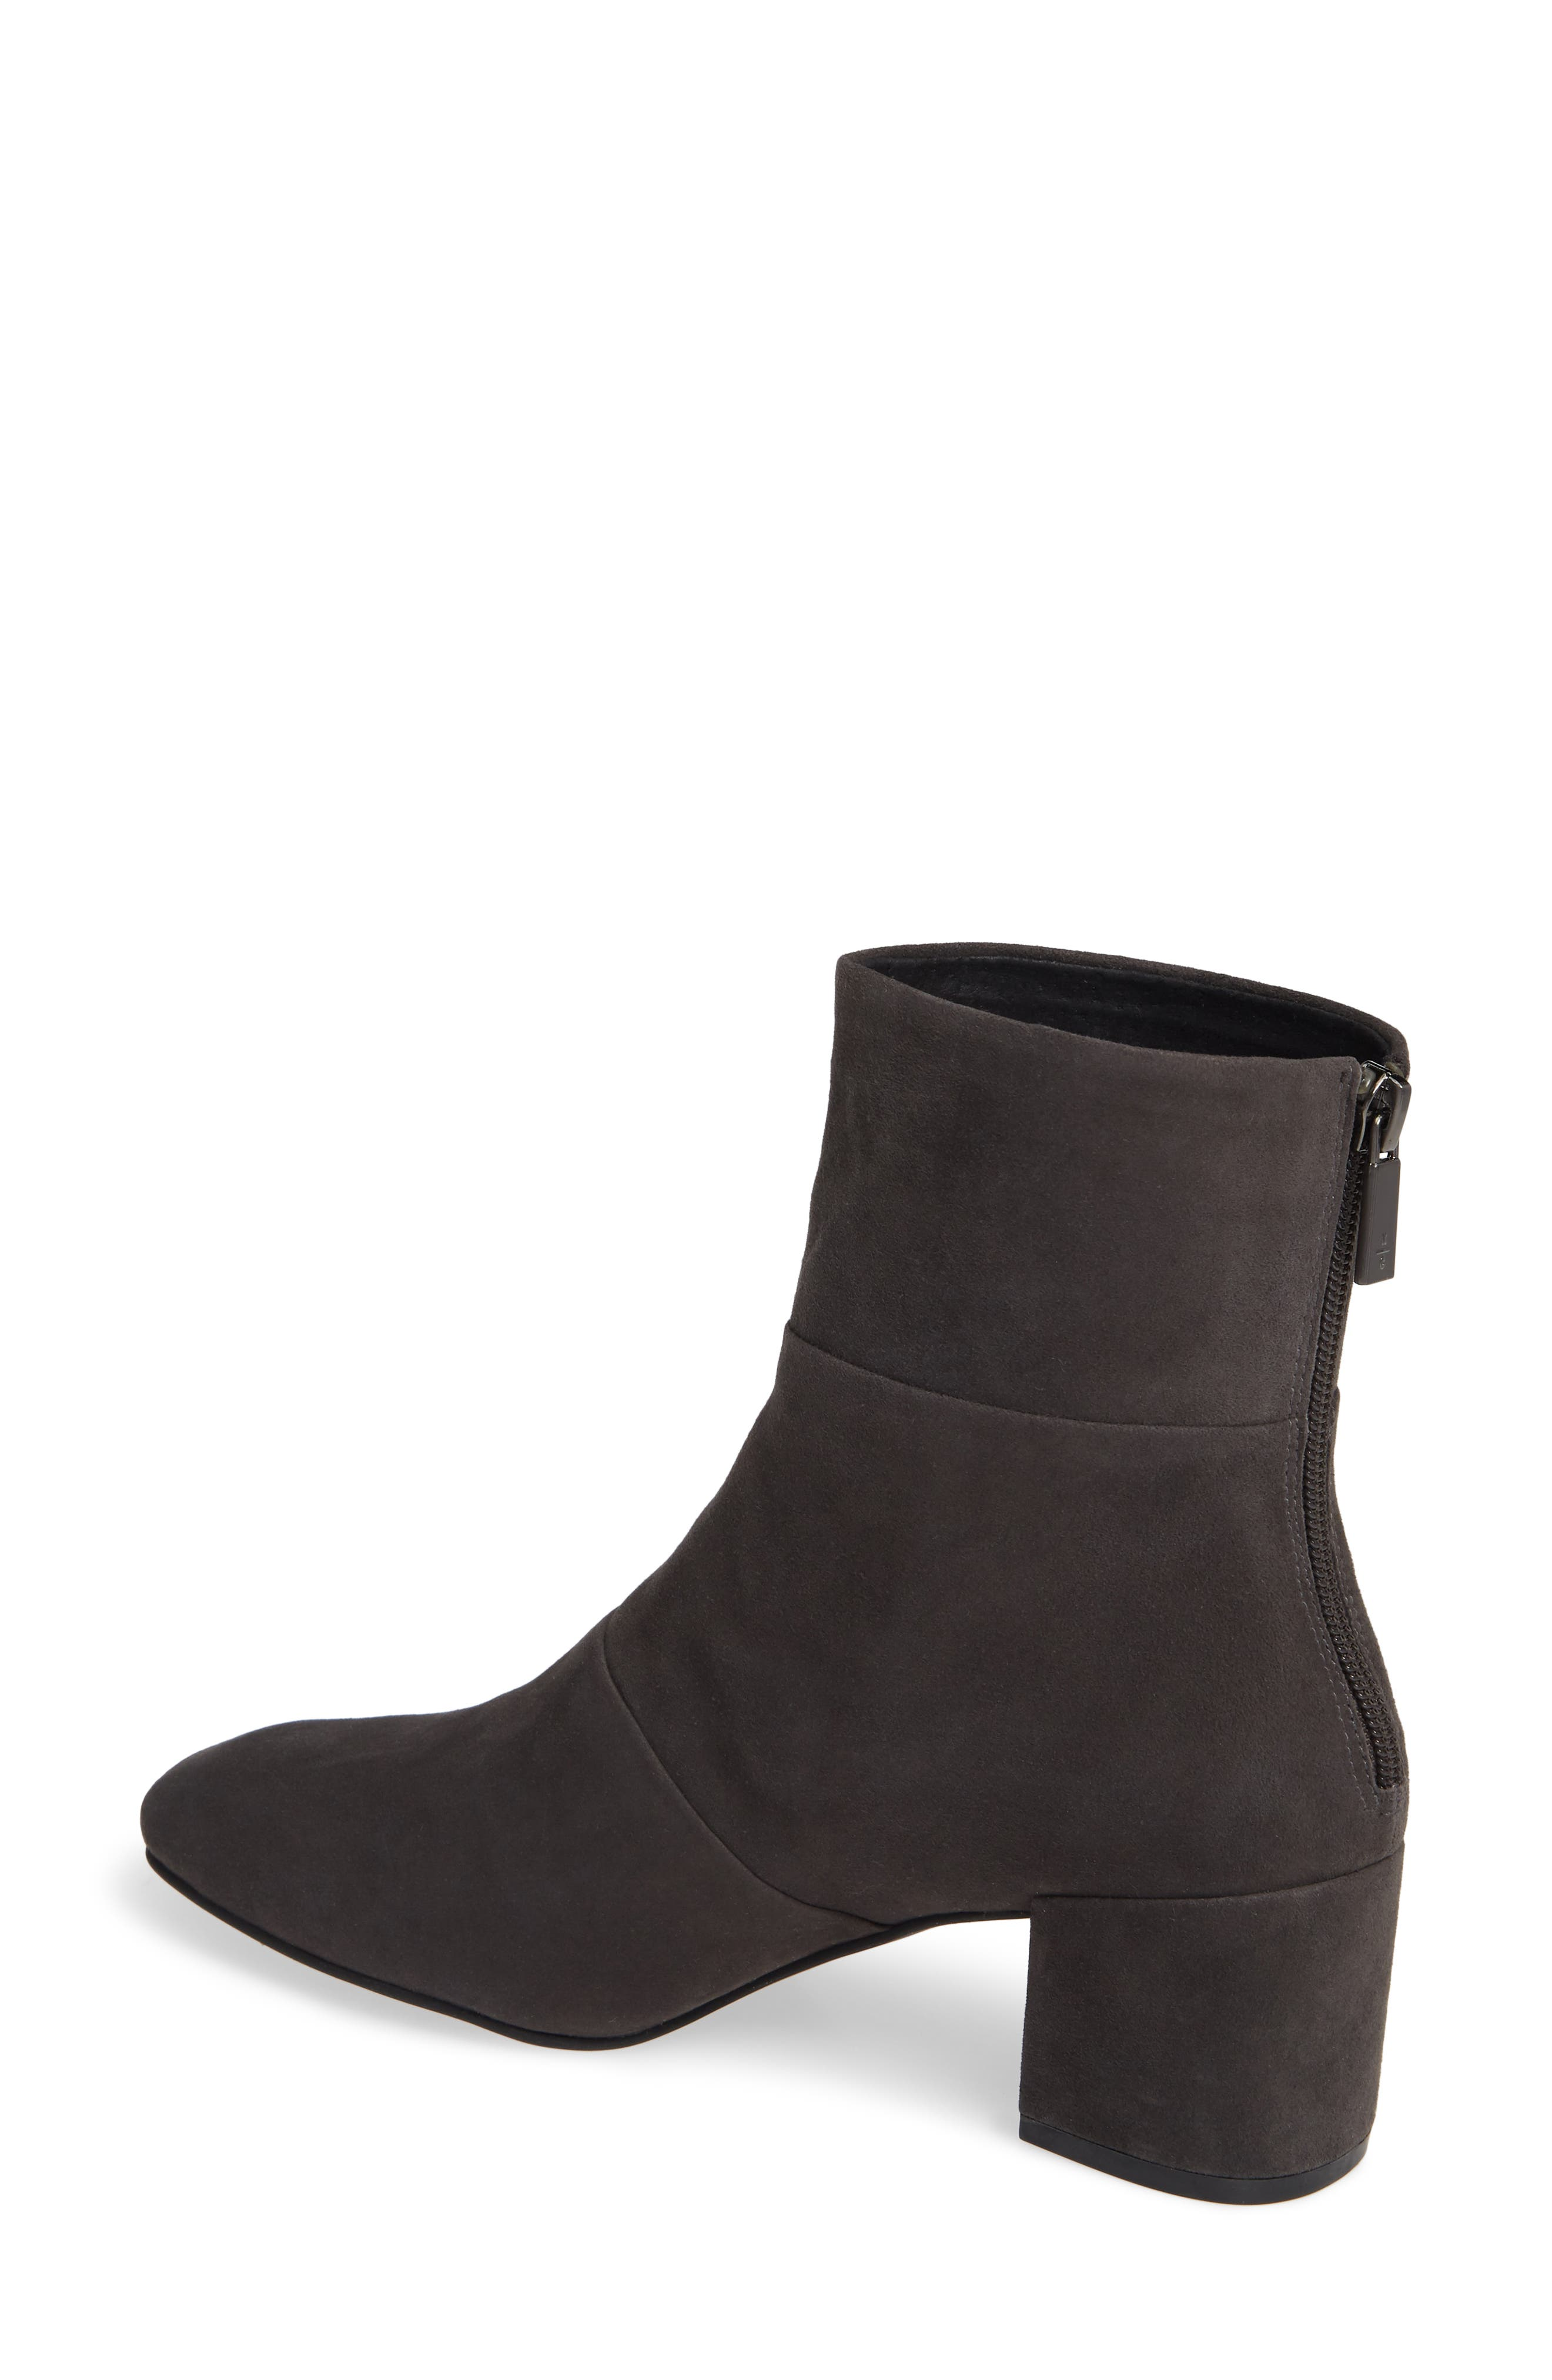 fe53a4aed57 Women s Kenneth Cole New York Booties   Ankle Boots